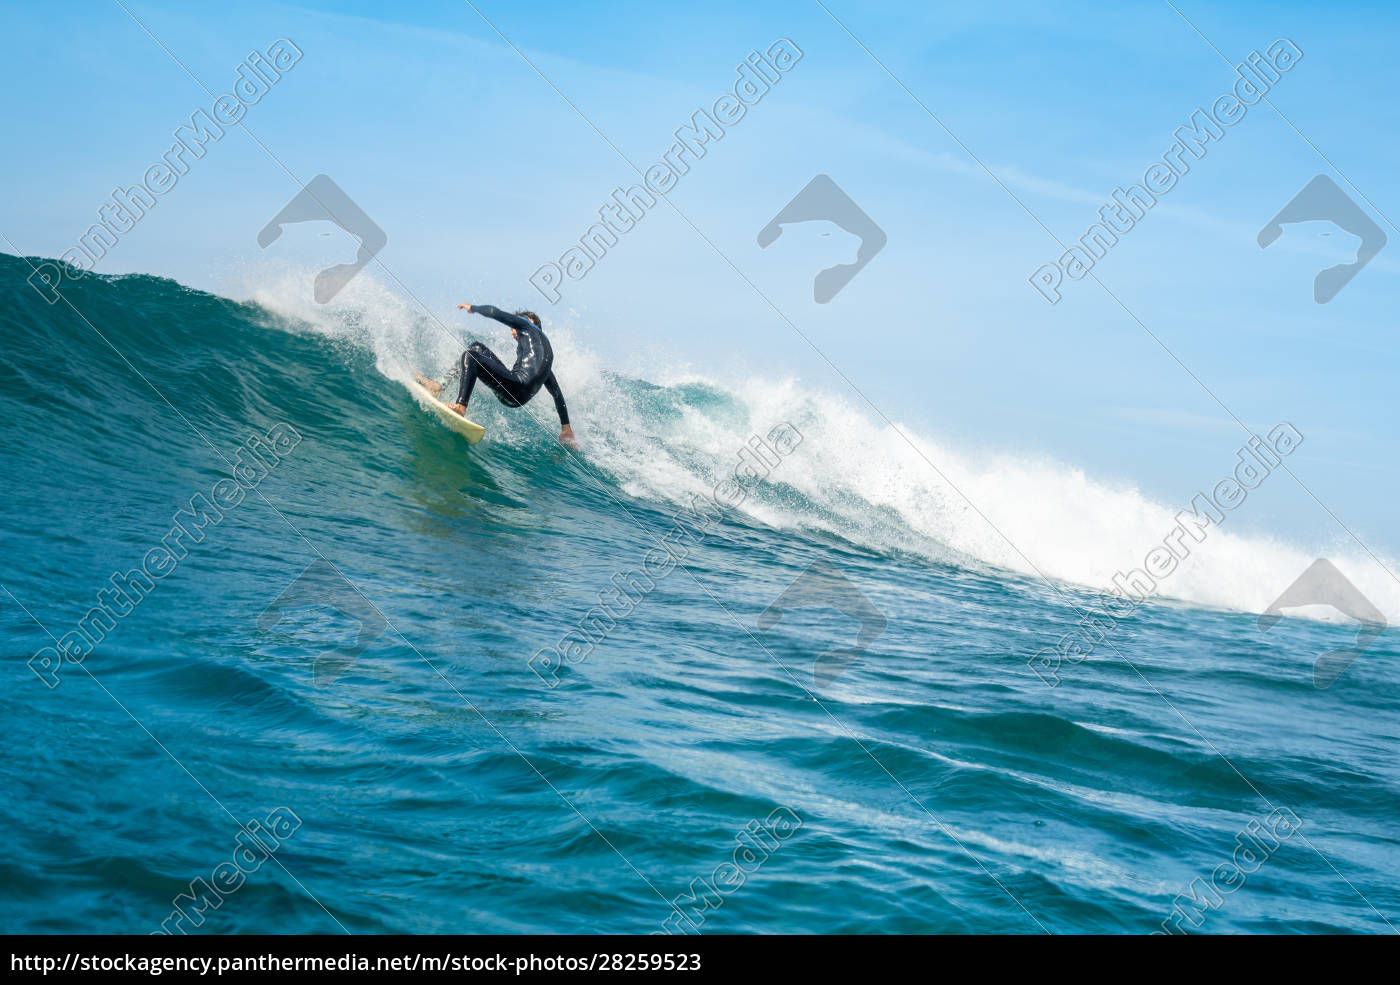 surfer, riding, waves, on, the, island - 28259523